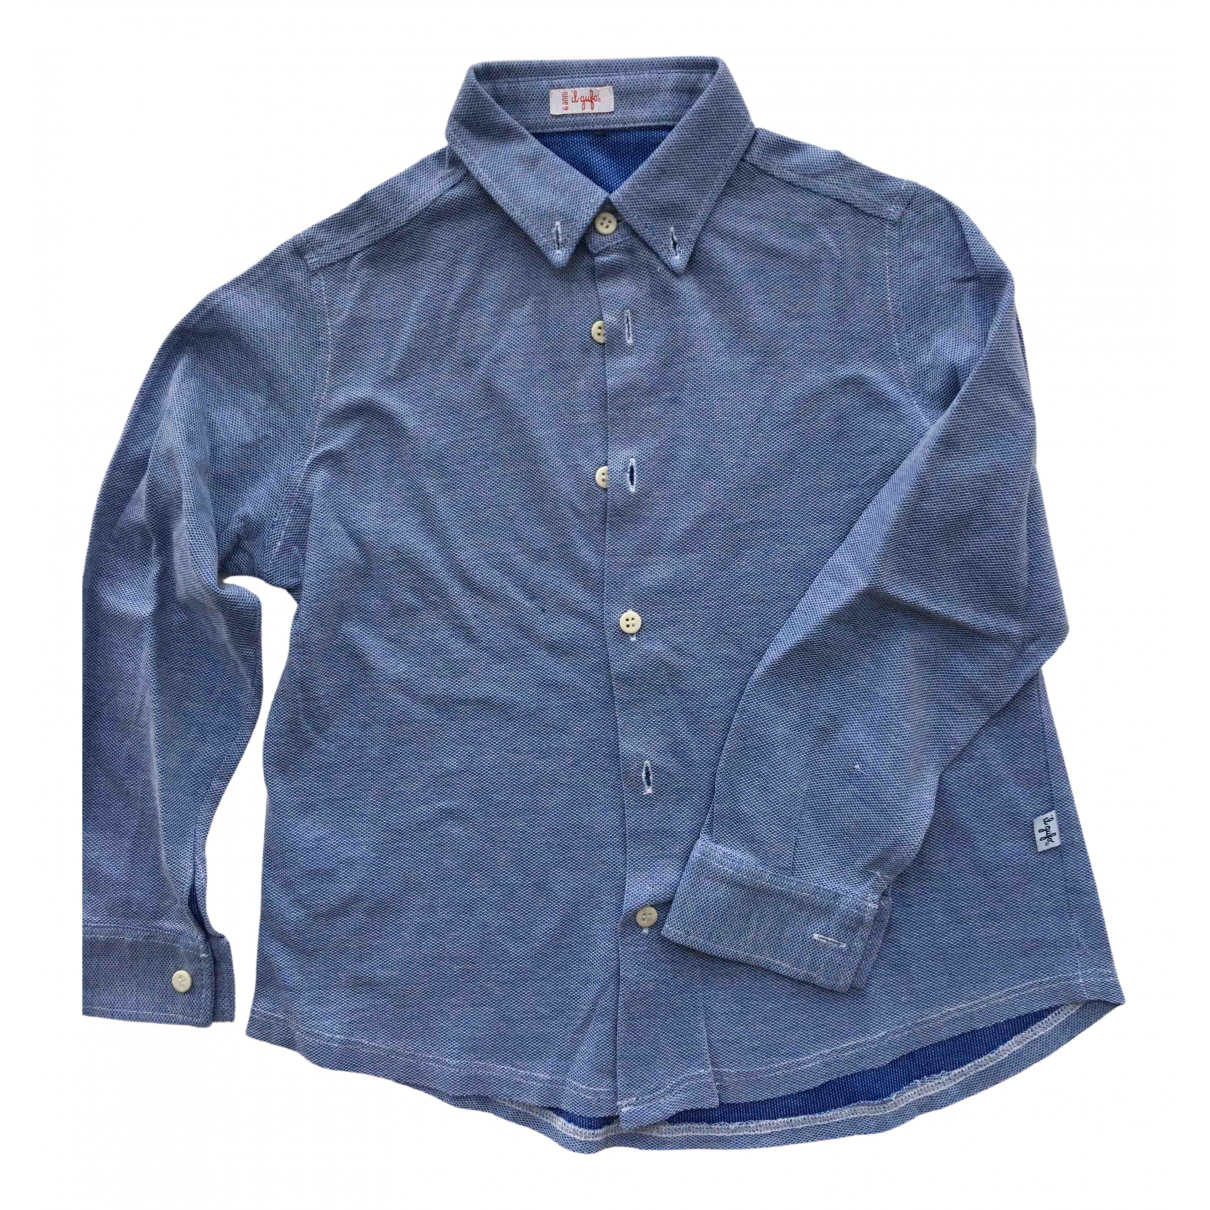 Il Gufo N Blue Cotton  top for Kids 6 years - up to 114cm FR